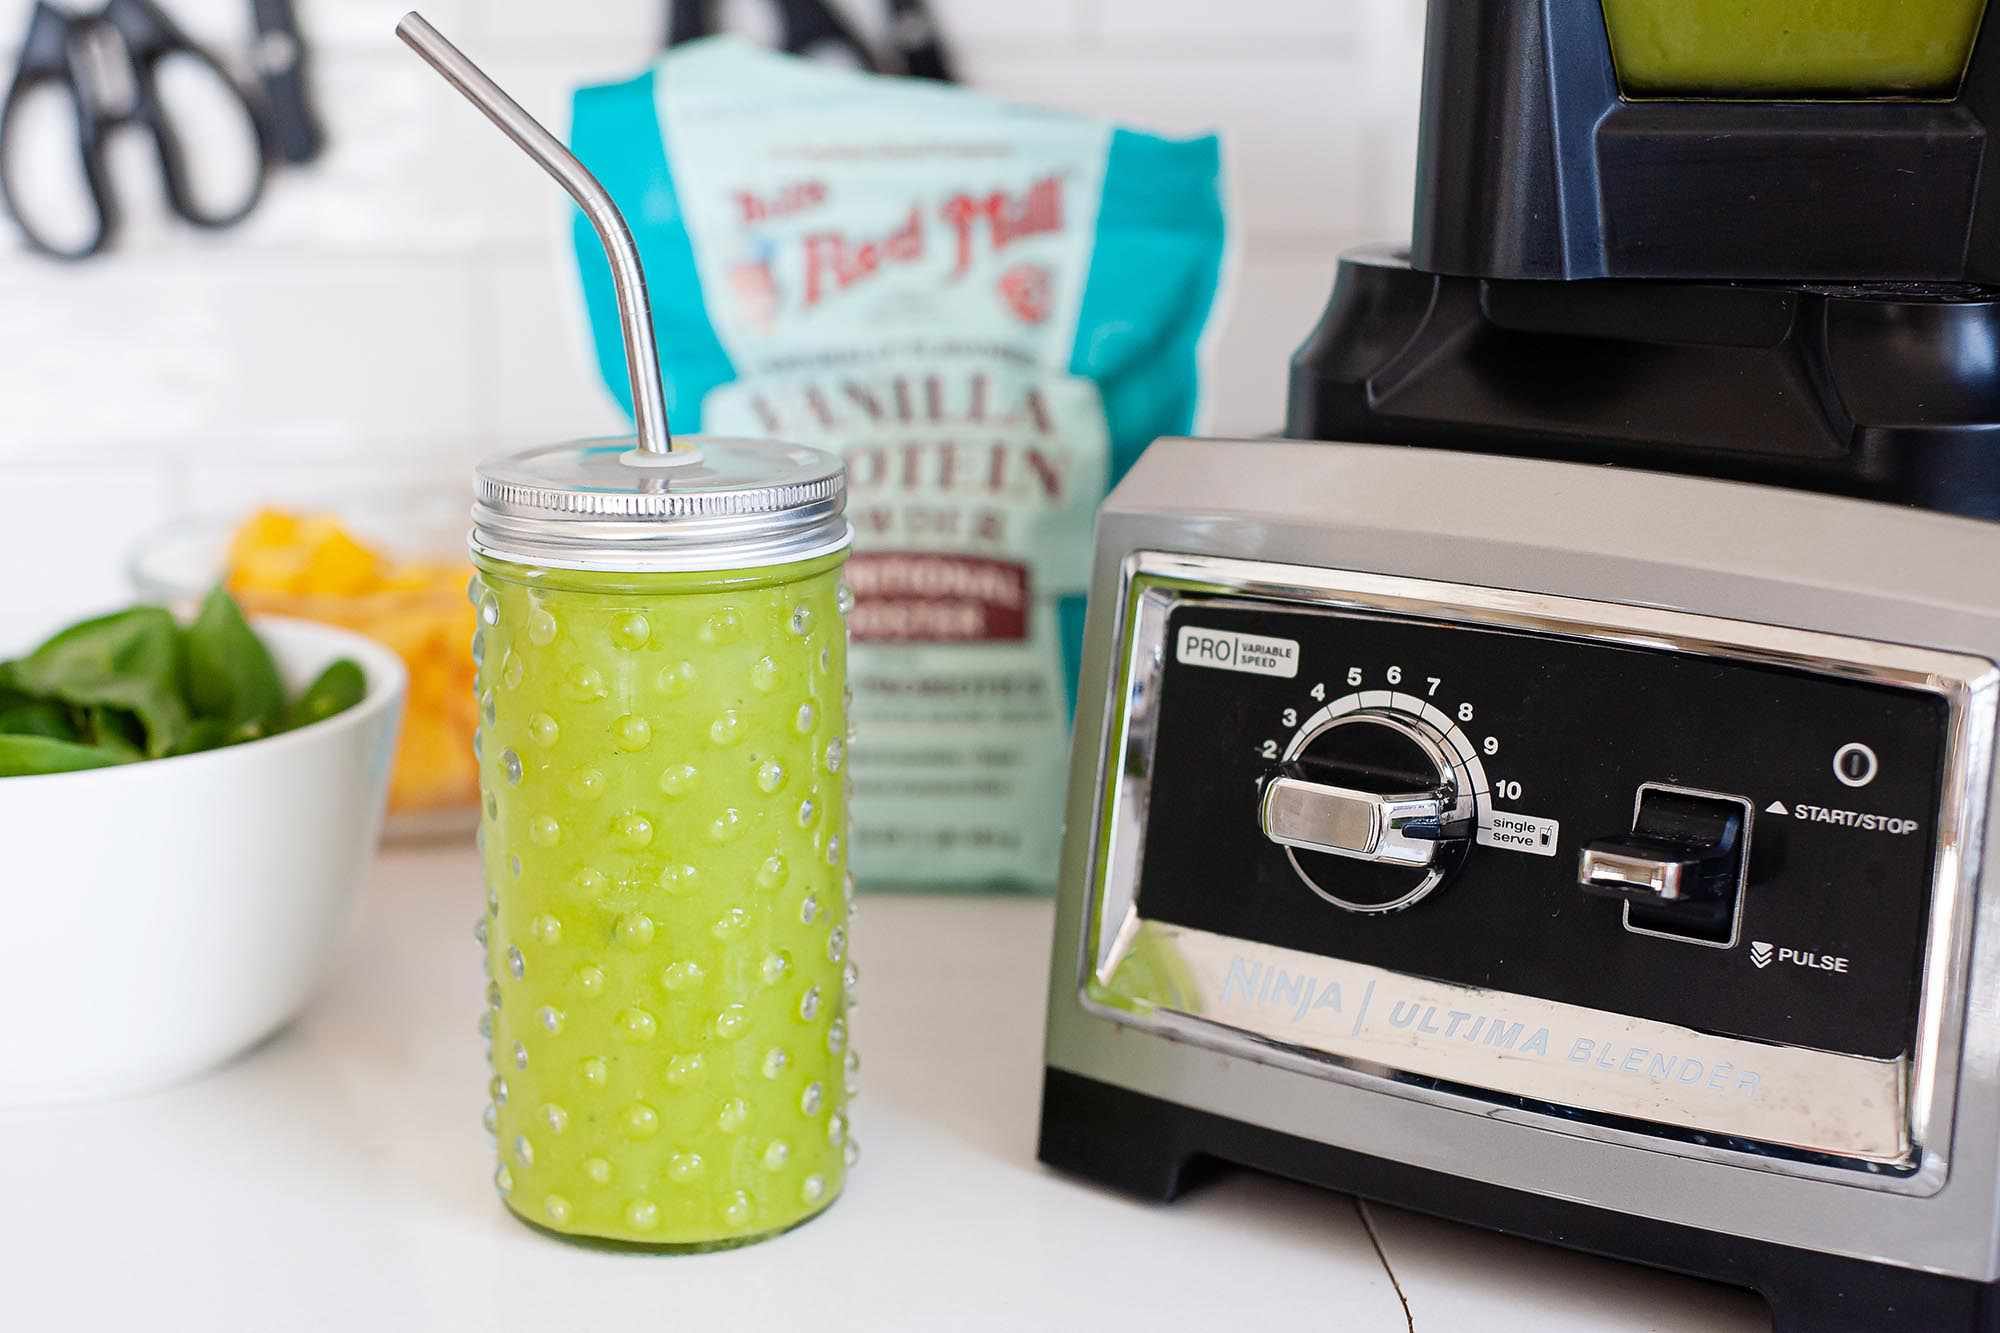 A green smoothie in a lidded glass mason jar with a stainless steel straw sits on a white countertop. The base of a high speed blender is to the right of the smoothie. A bowl of spinach, cut fruit and a bag of protein powder are to the left of the smoothie as well as behind it.